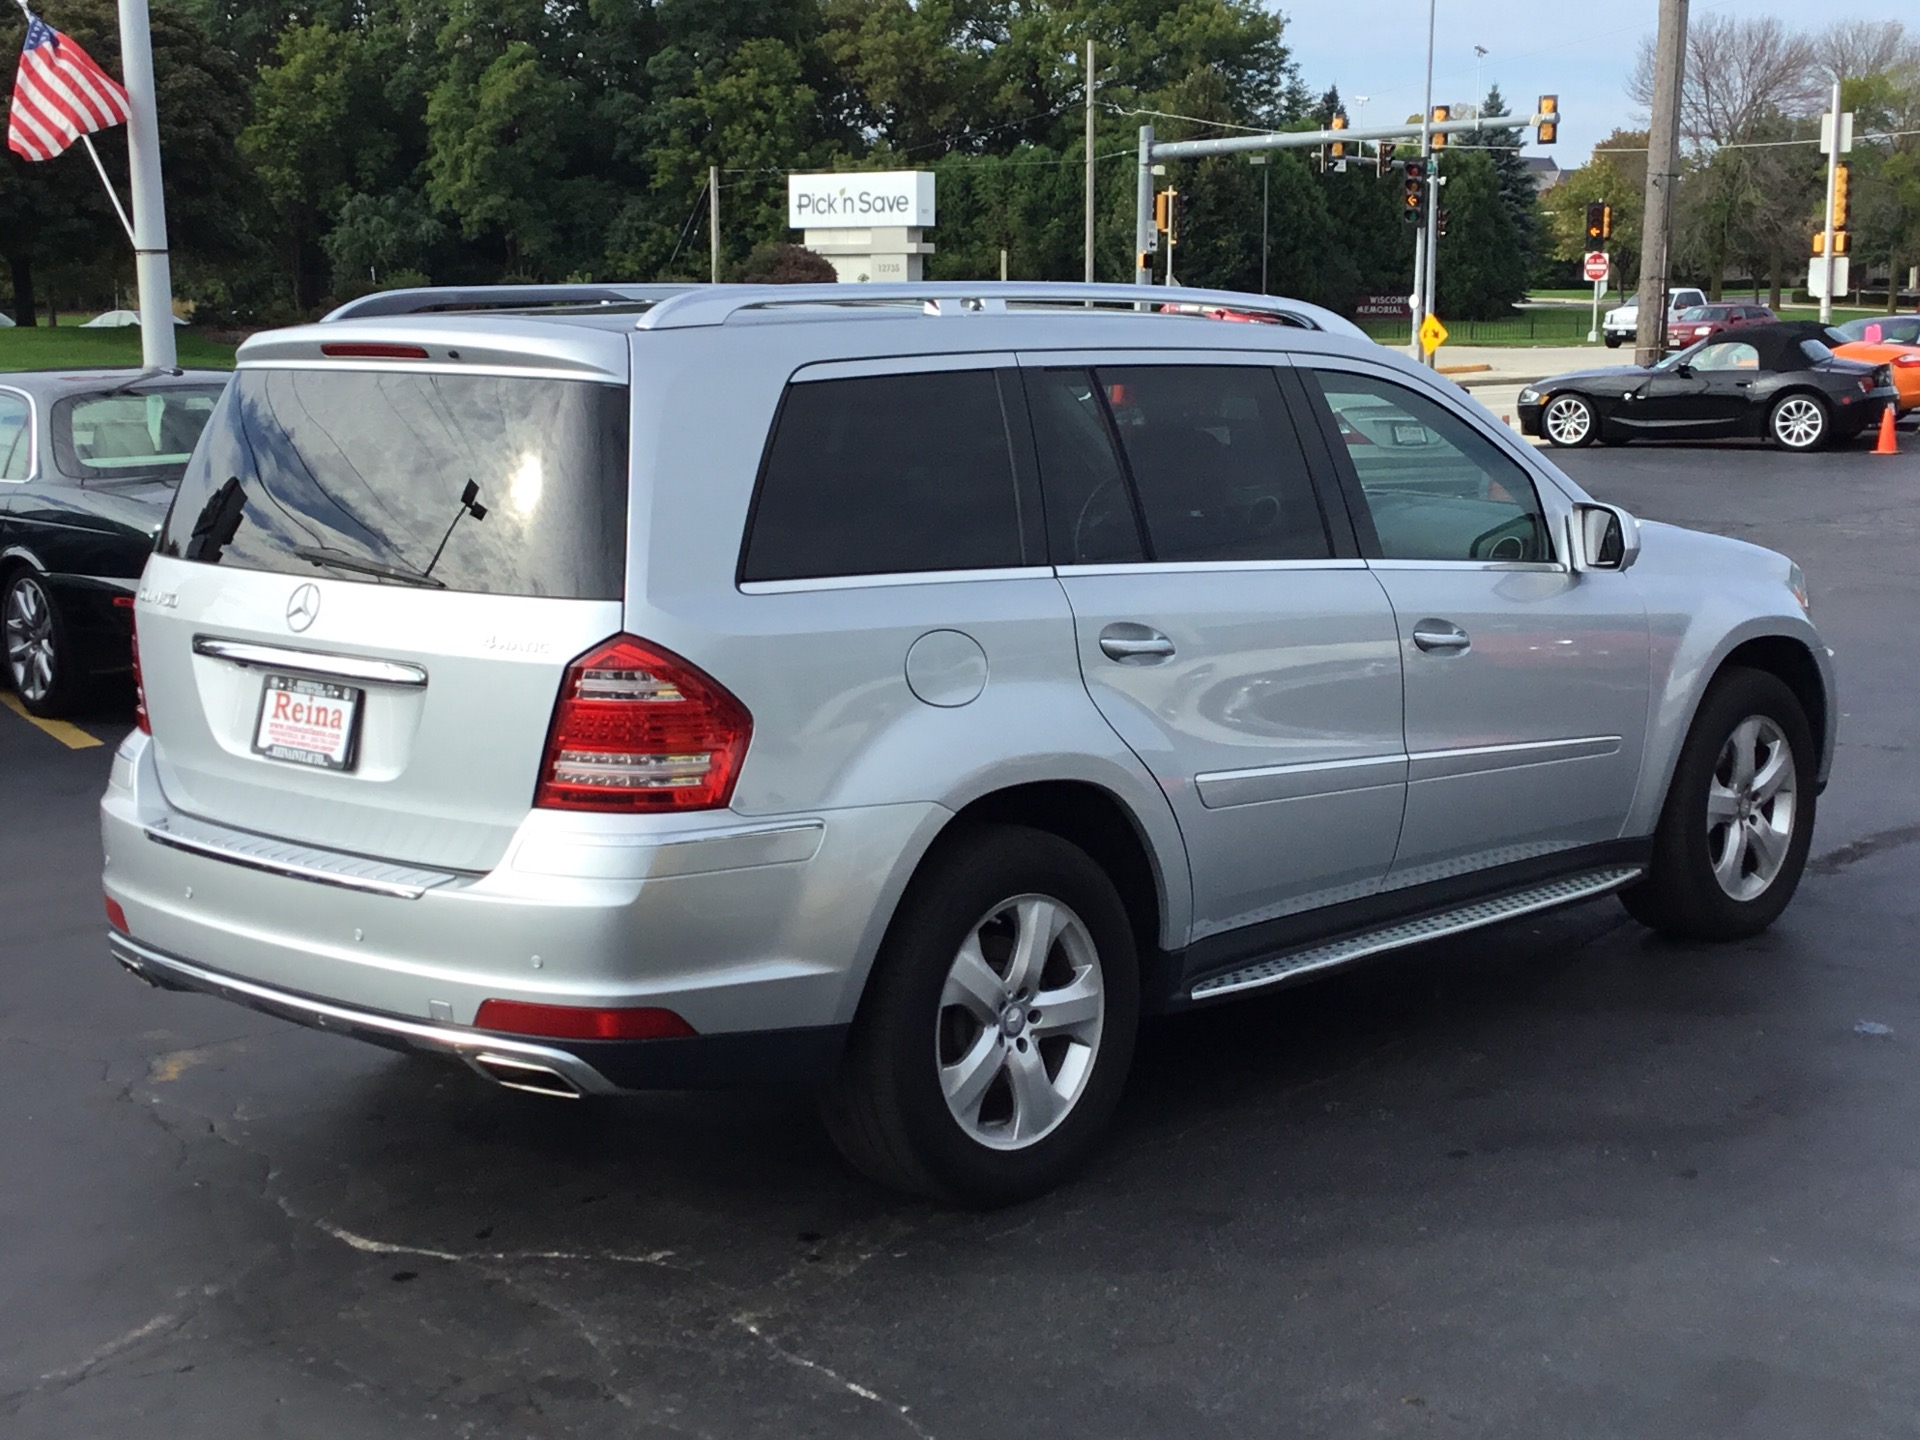 Capitol Auto Sales >> 2010 Mercedes-Benz GL-Class GL 450 4MATIC Stock # 7554 for sale near Brookfield, WI | WI ...